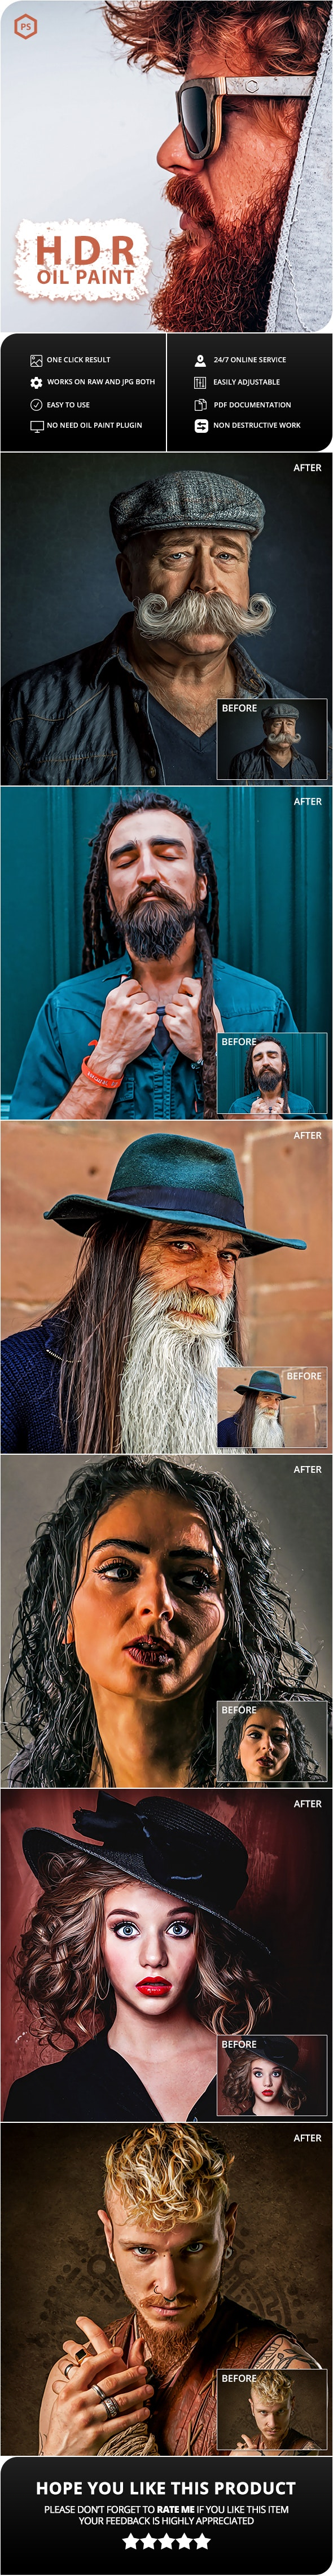 HDR Oil Paint Photoshop Action - Photo Effects Actions